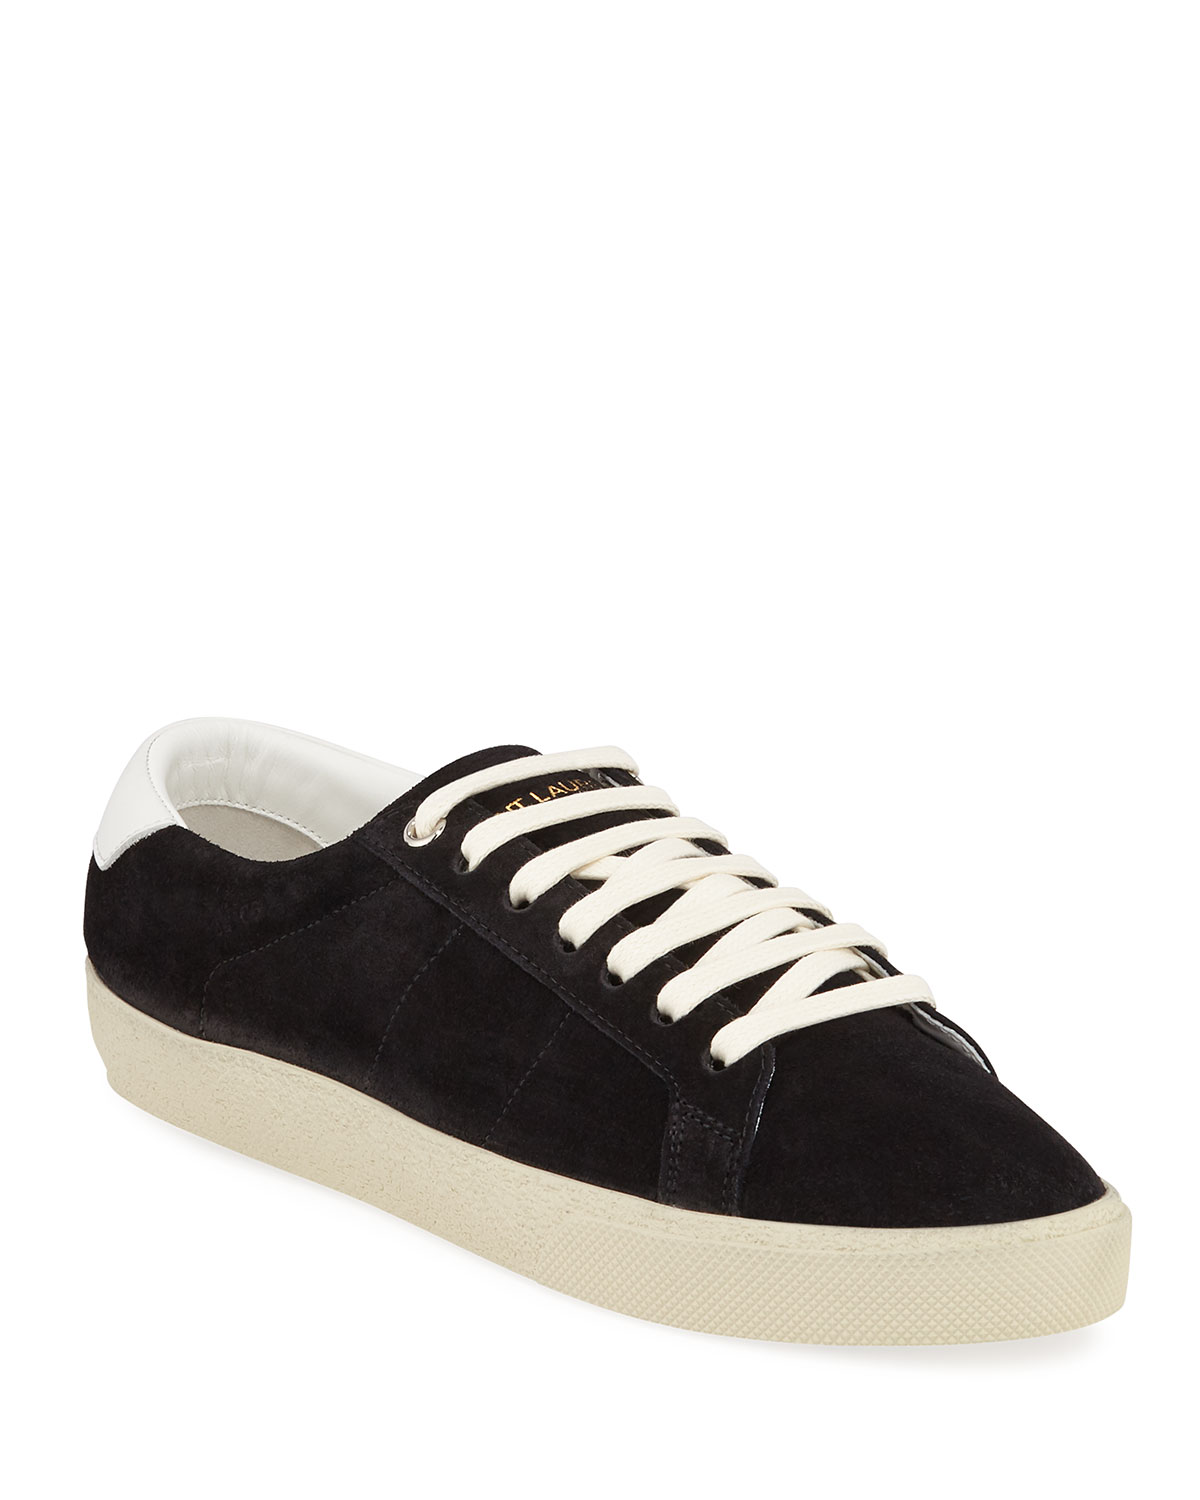 Court Classic Suede Sneakers